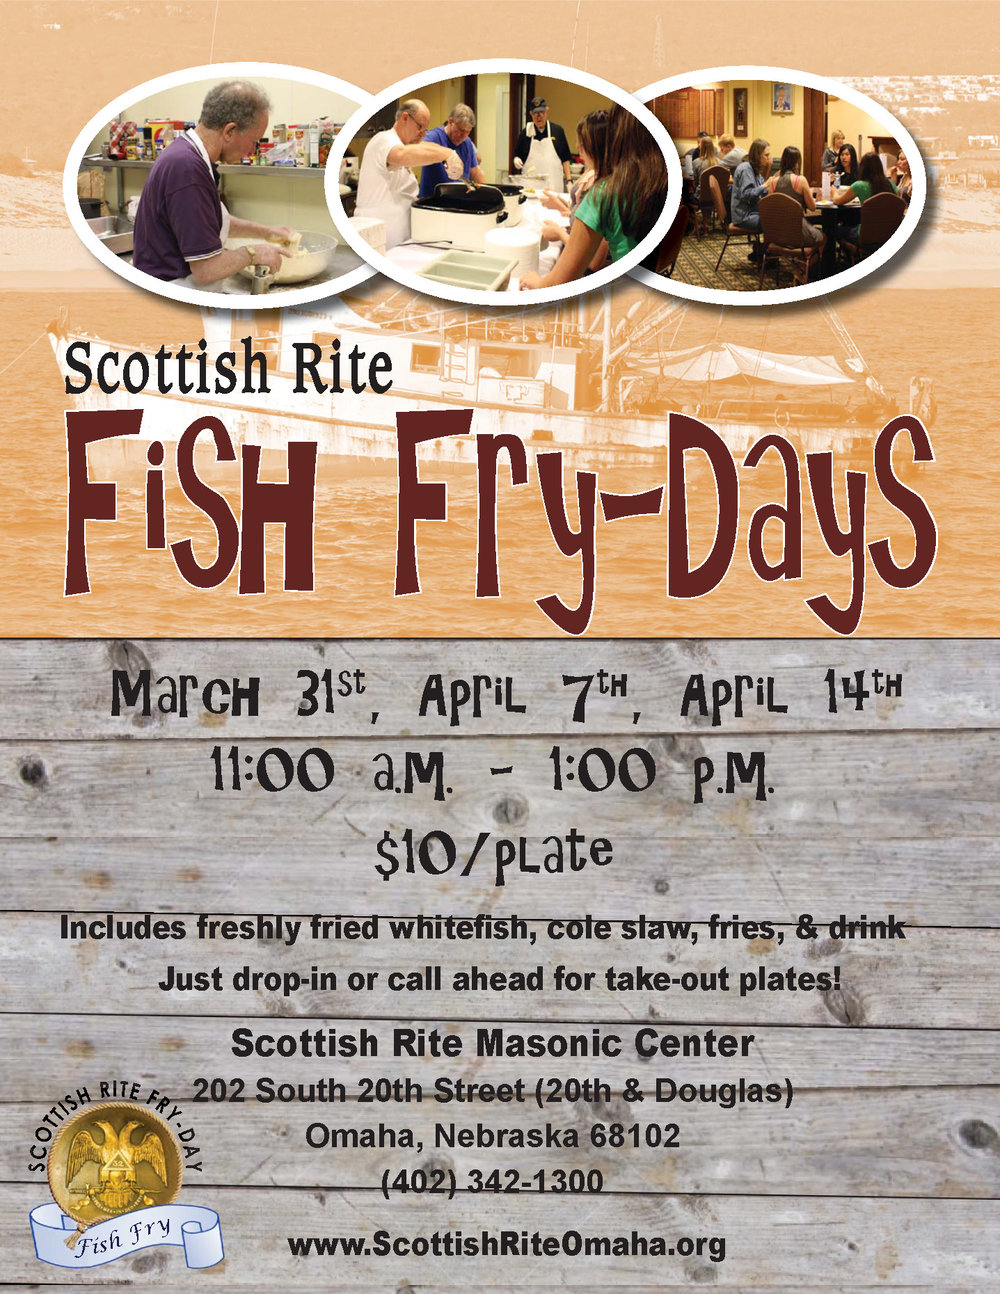 Click above image to download a PDF of the fish fry flier.